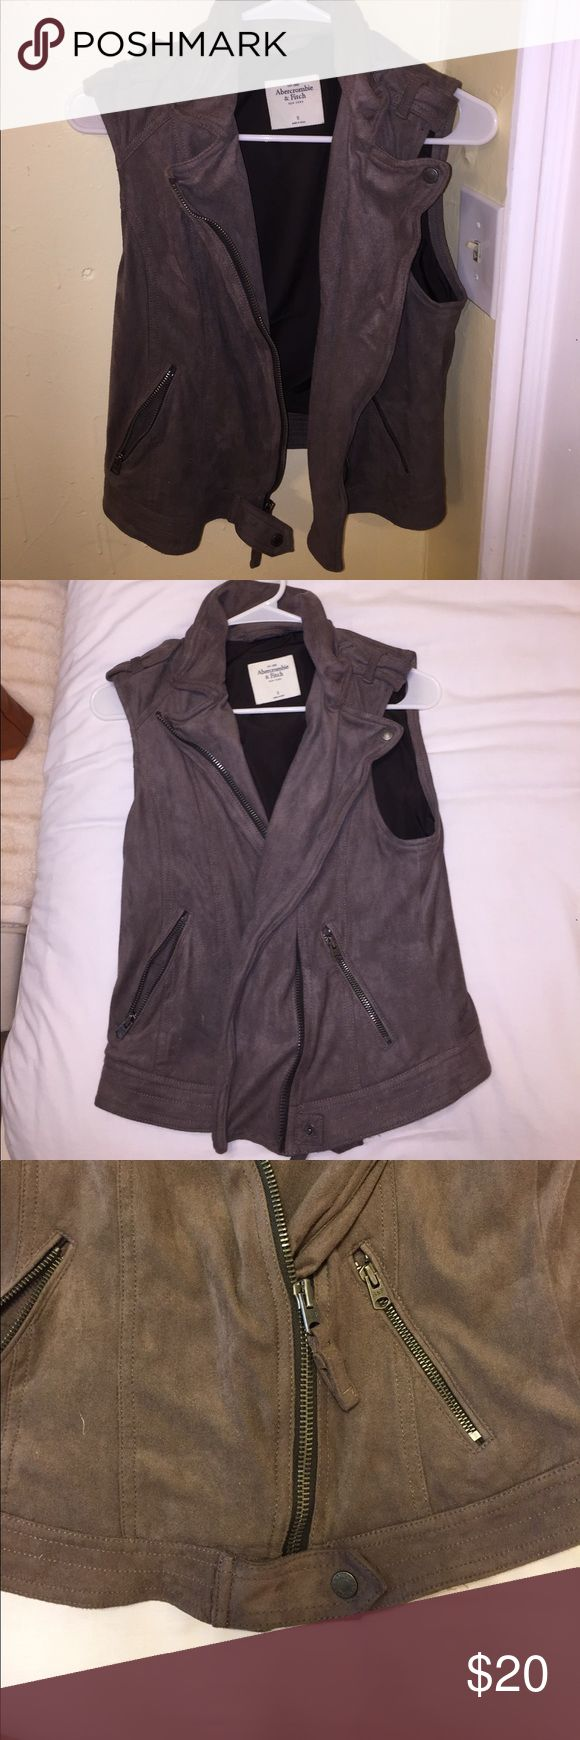 Abercrombie and Fitch suede vest Super comfy, very good condition. Worn once: can dress it down or up. Suede material with an off center zip up. Abercrombie & Fitch Jackets & Coats Vests